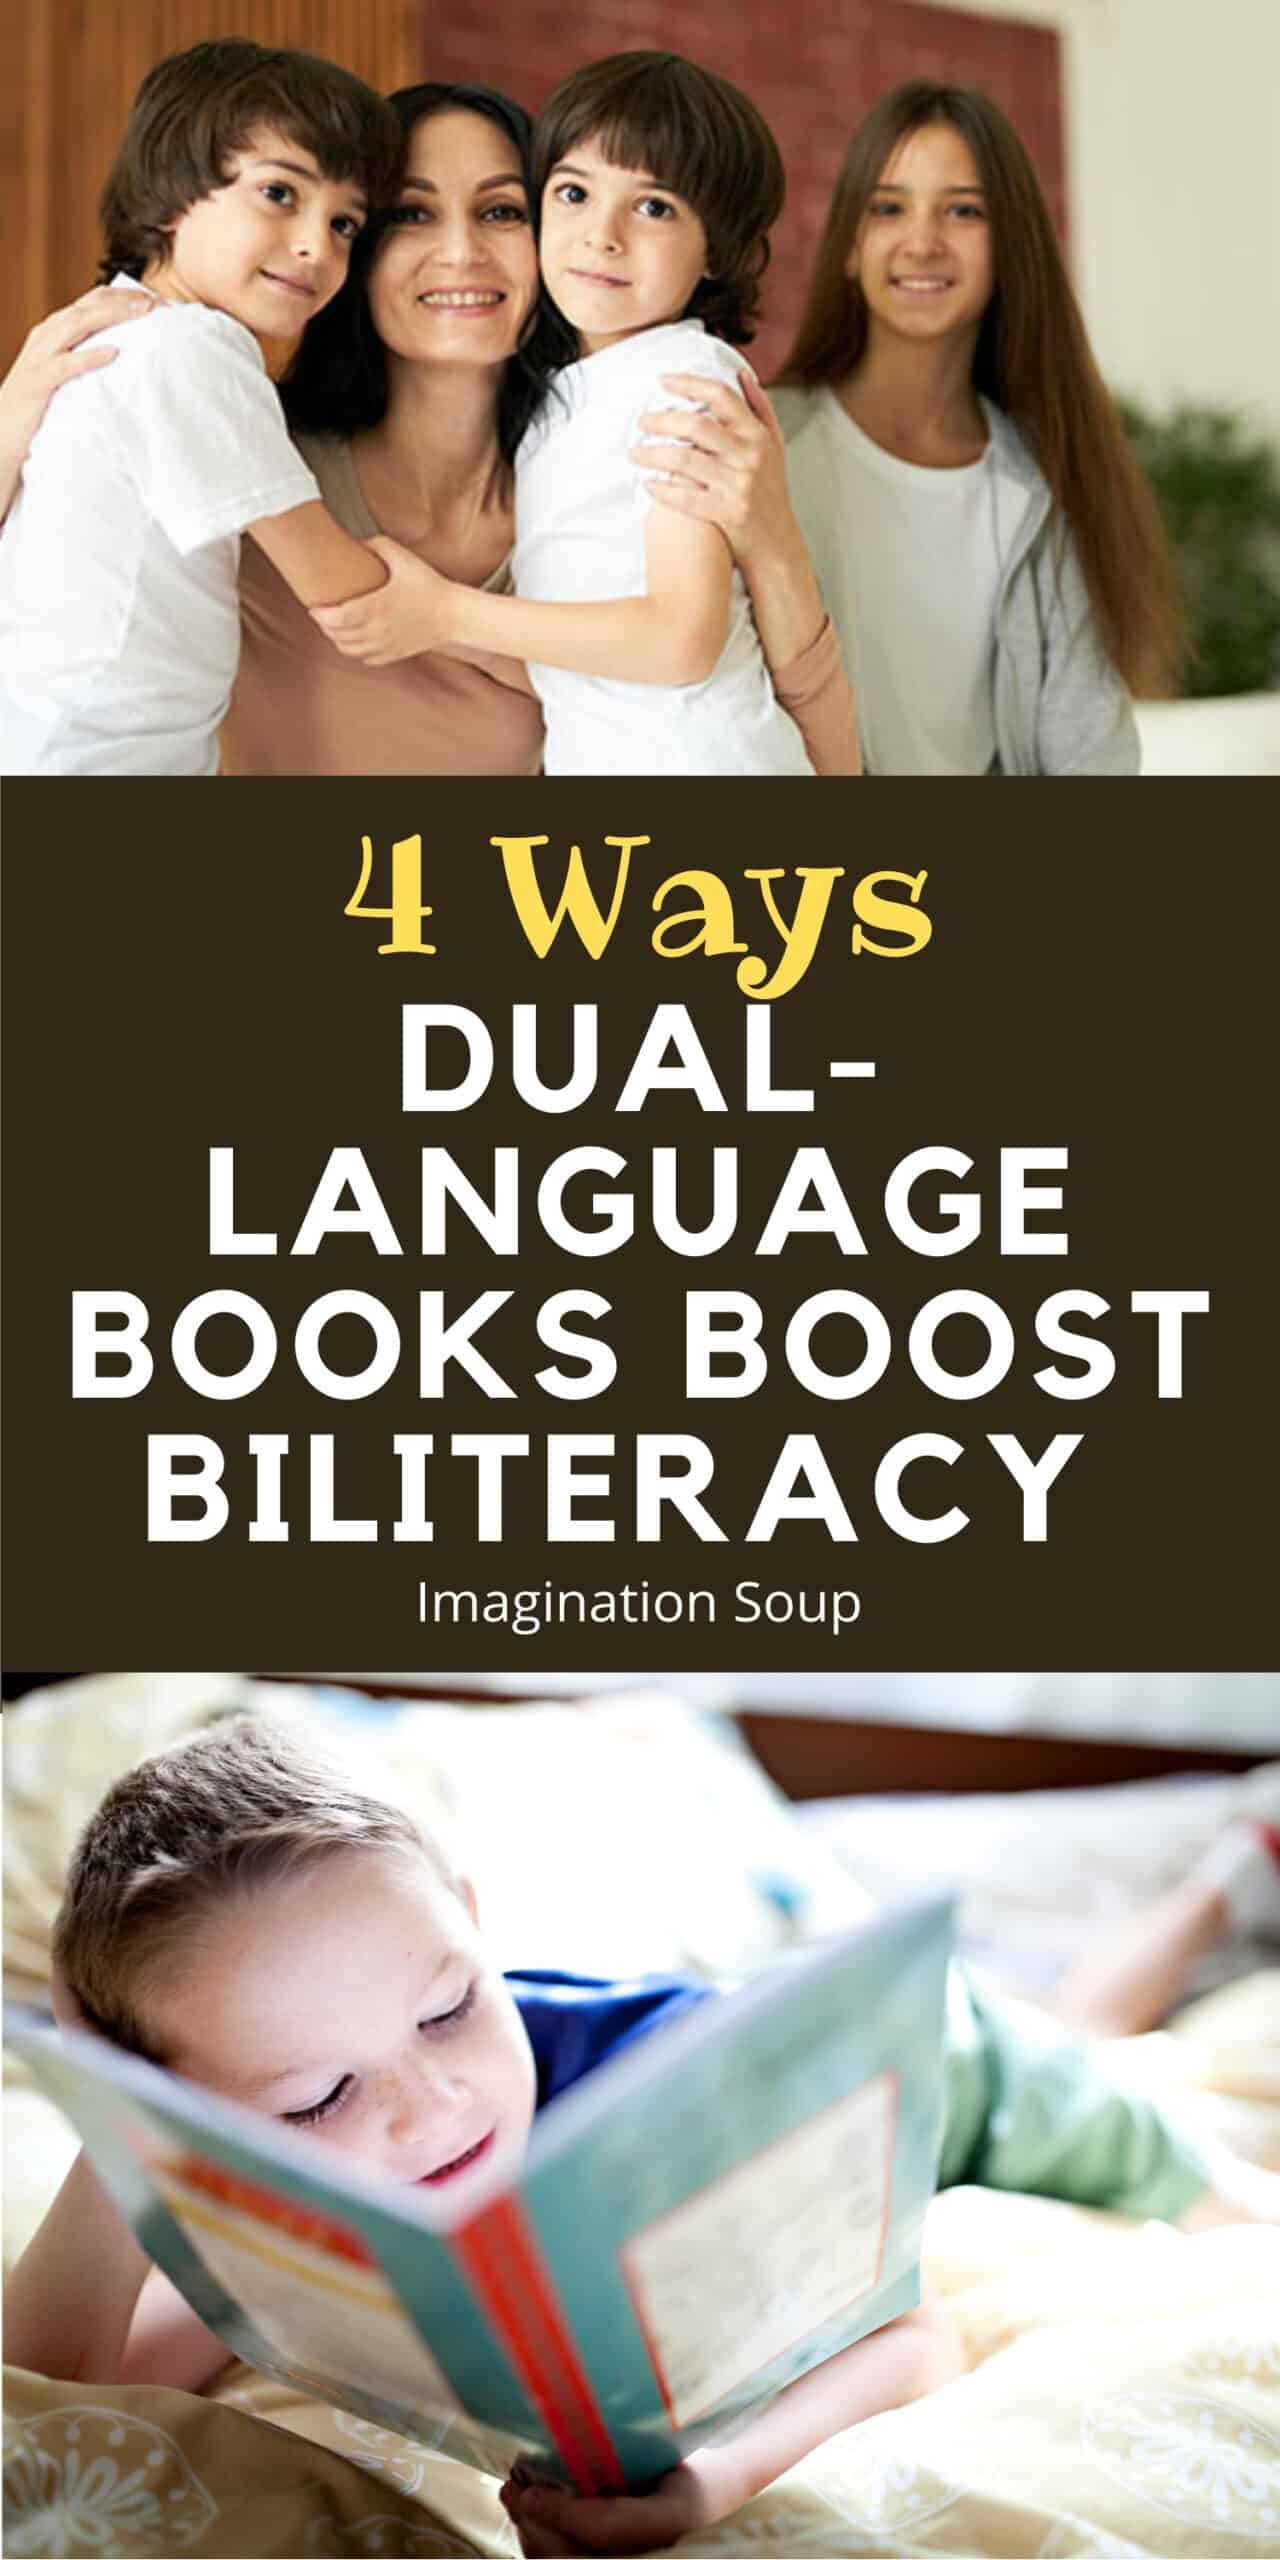 4 Ways Dual-Language Books Can Boost Biliteracy in Young Children